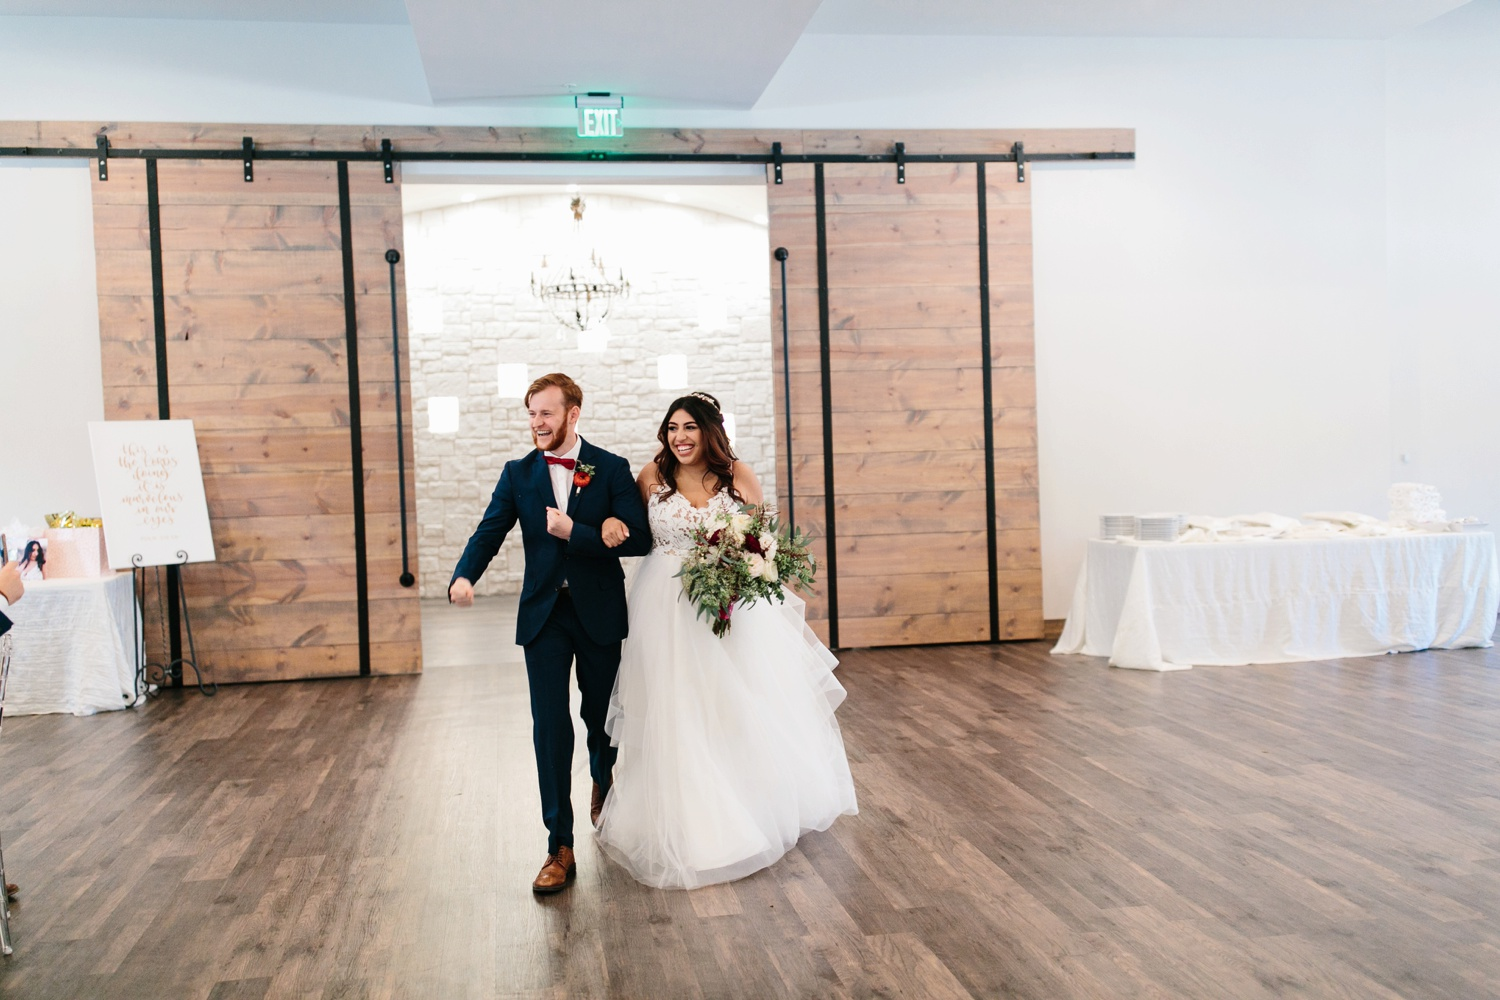 Grant + Lysette | a vibrant, deep burgundy and navy, and mixed metals wedding at Hidden Pines Chapel by North Texas Wedding Photographer Rachel Meagan Photography 131